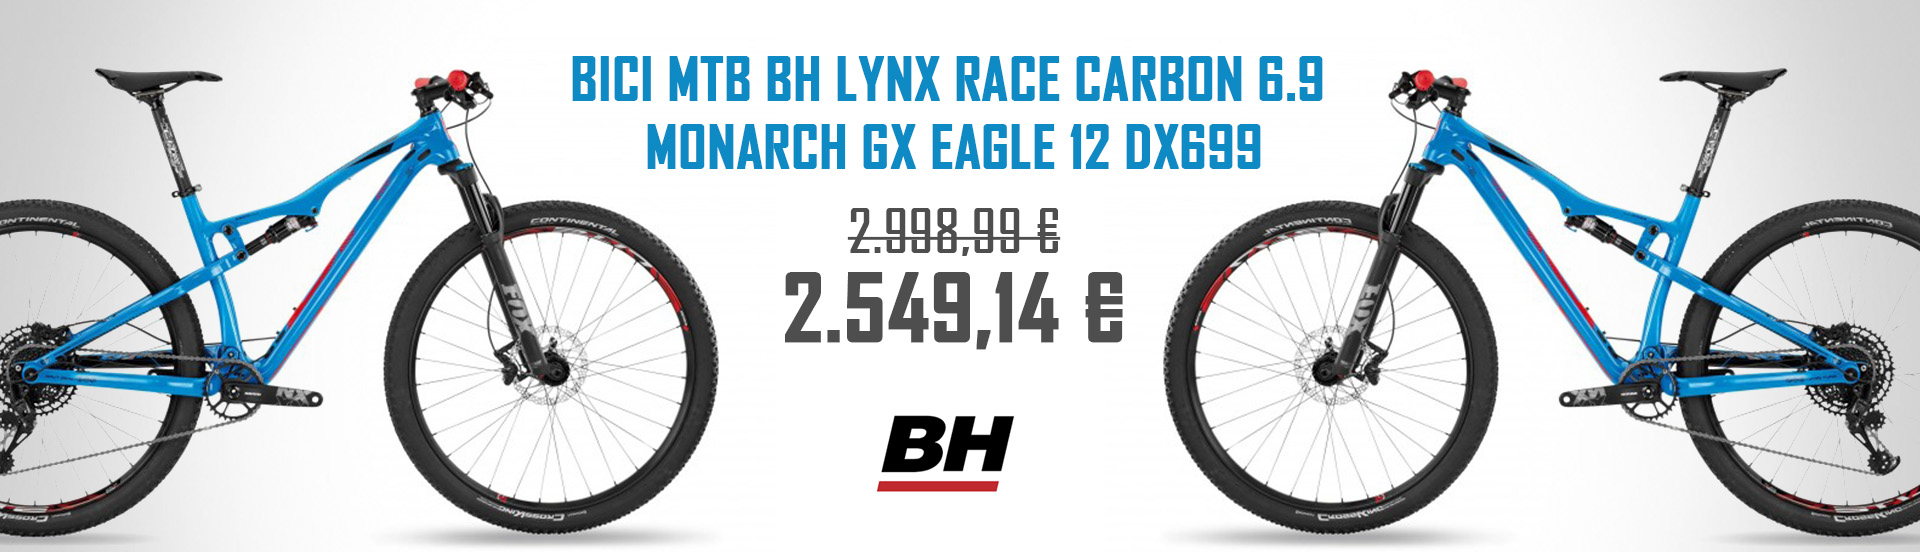 BICI MTB BH LYNX RACE CARBON 6.9 MONARCH GX EAGLE 12